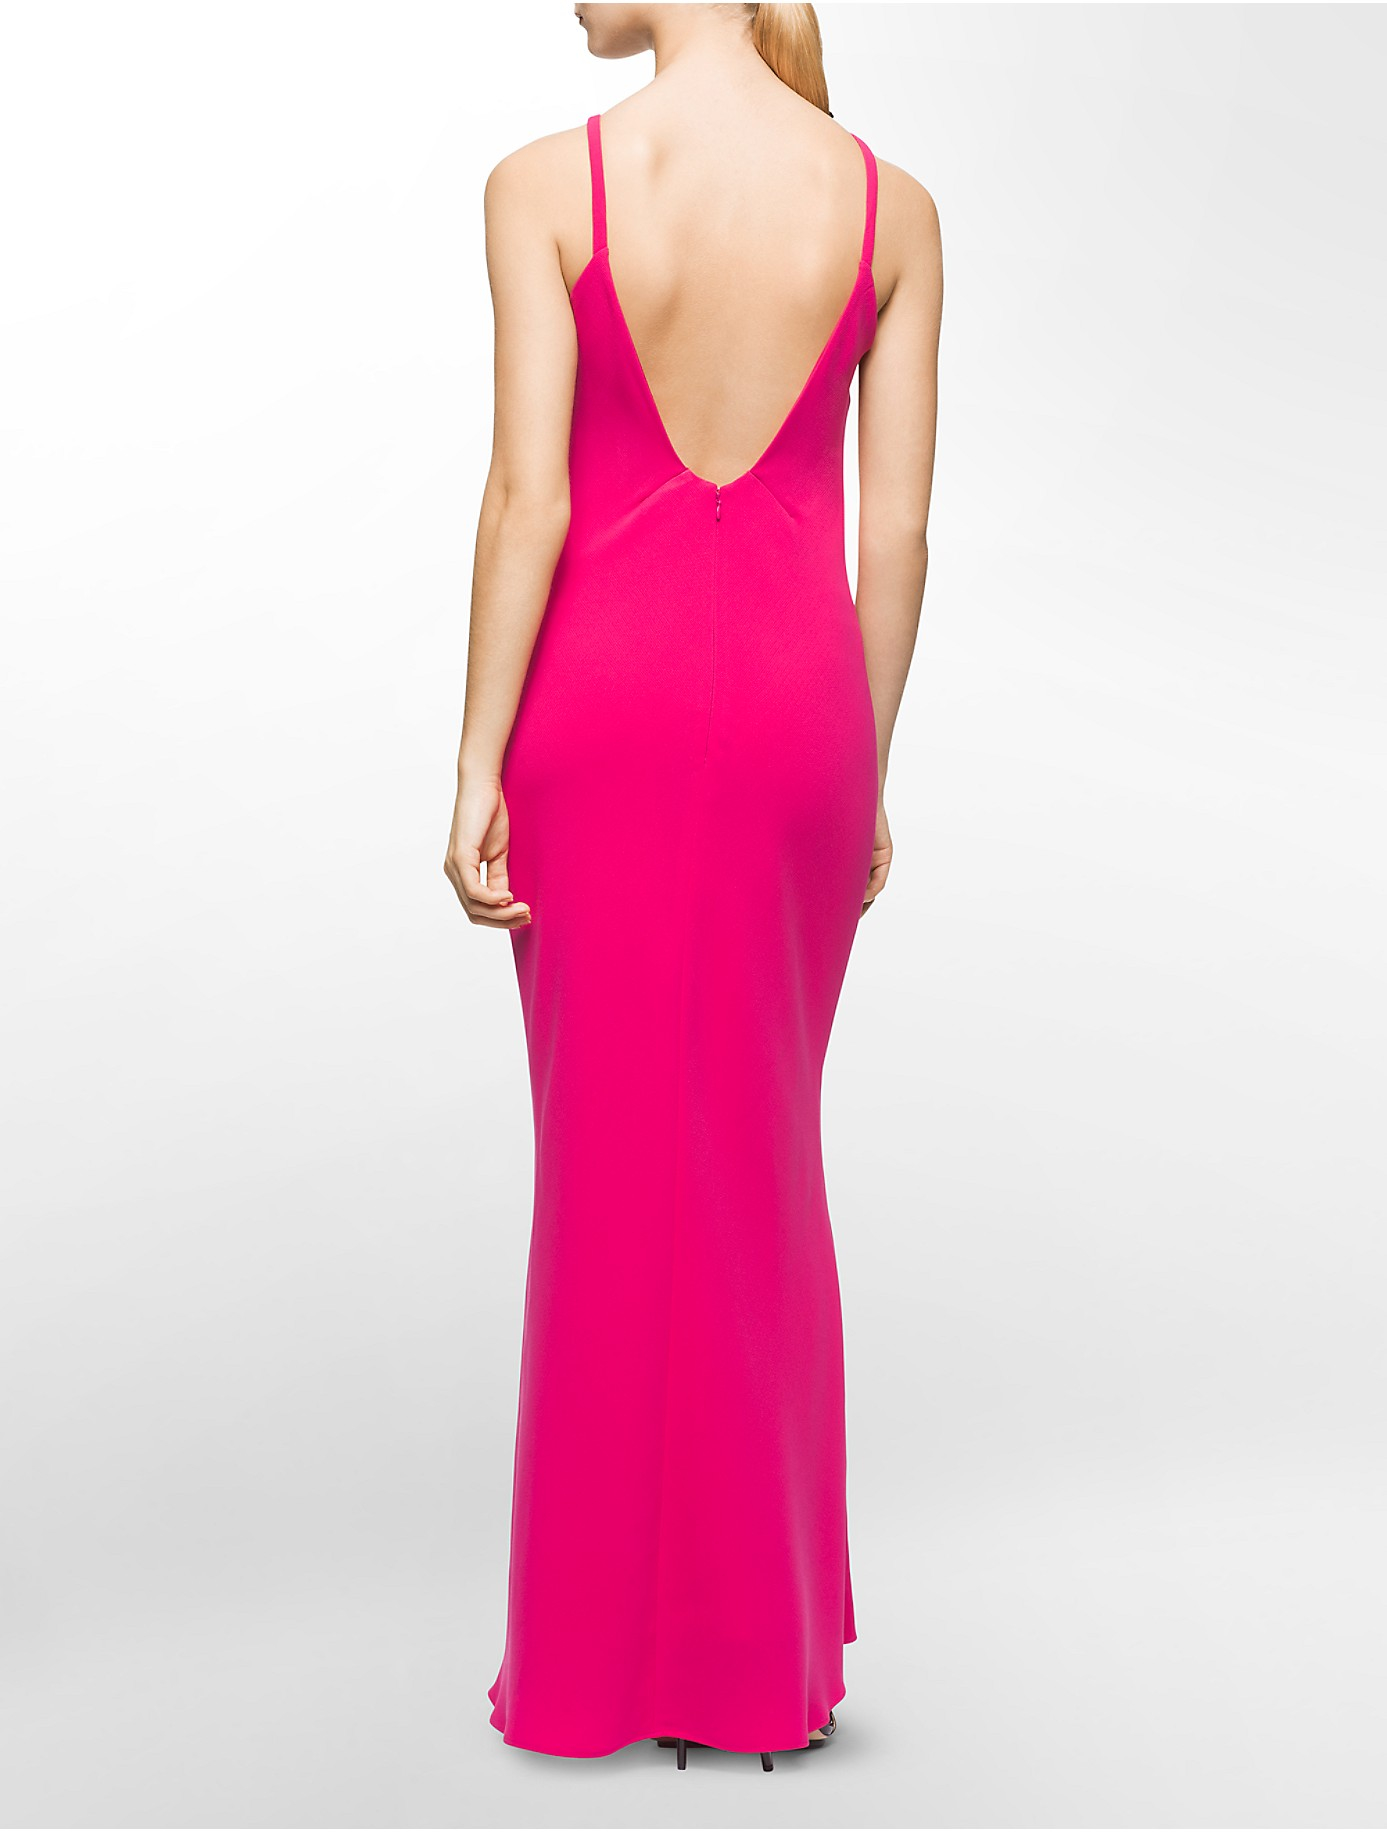 Calvin klein White Label Halter Neck Low Back Gown in Pink | Lyst